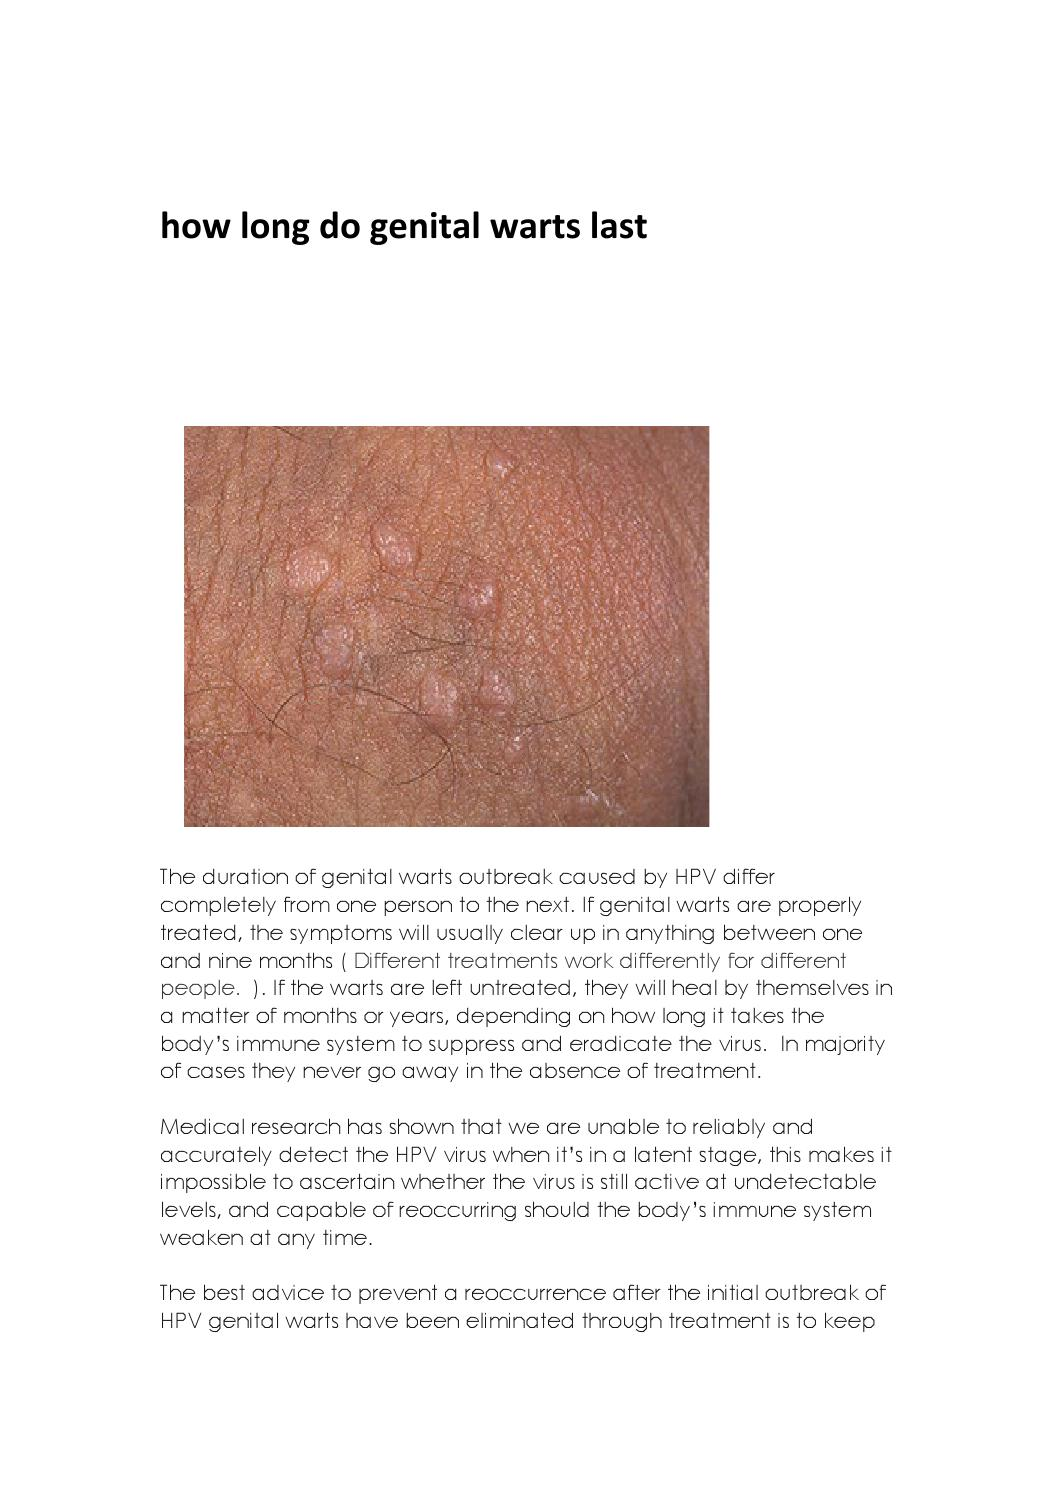 dating someone genital warts Genital warts — comprehensive overview research has shown that people under 21 and age 21 to 30 who receive the hpv vaccine can reduce their risk of getting.